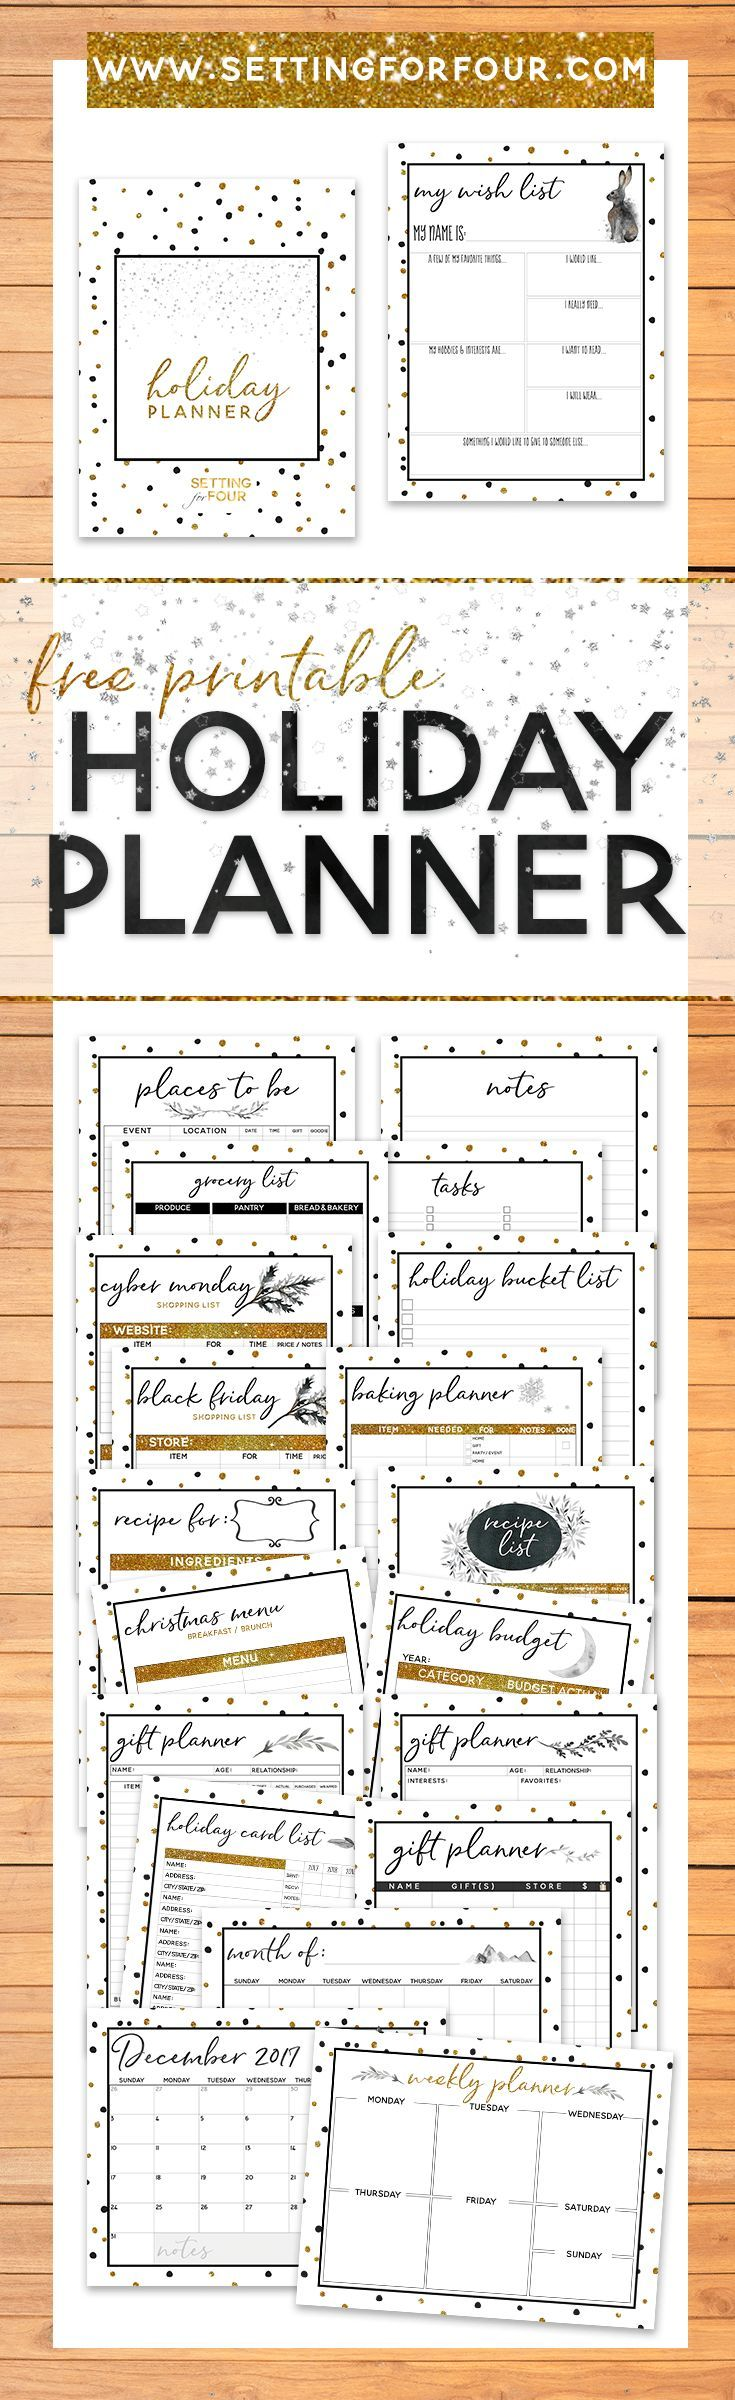 Take the stress out of the holidays, get organized and STAY SANE with this FREE Holiday Planner Pack that includes 27 Free Printable Pages to plan Christmas! You won't forget a thing this holiday and you'll love the CHIC gold, black and white sparkly design!Includes FREE printable checklists & tracking sheets for gift lists, menus, places to be and calendars too! #free #holiday #christmas #planner #printable #organization